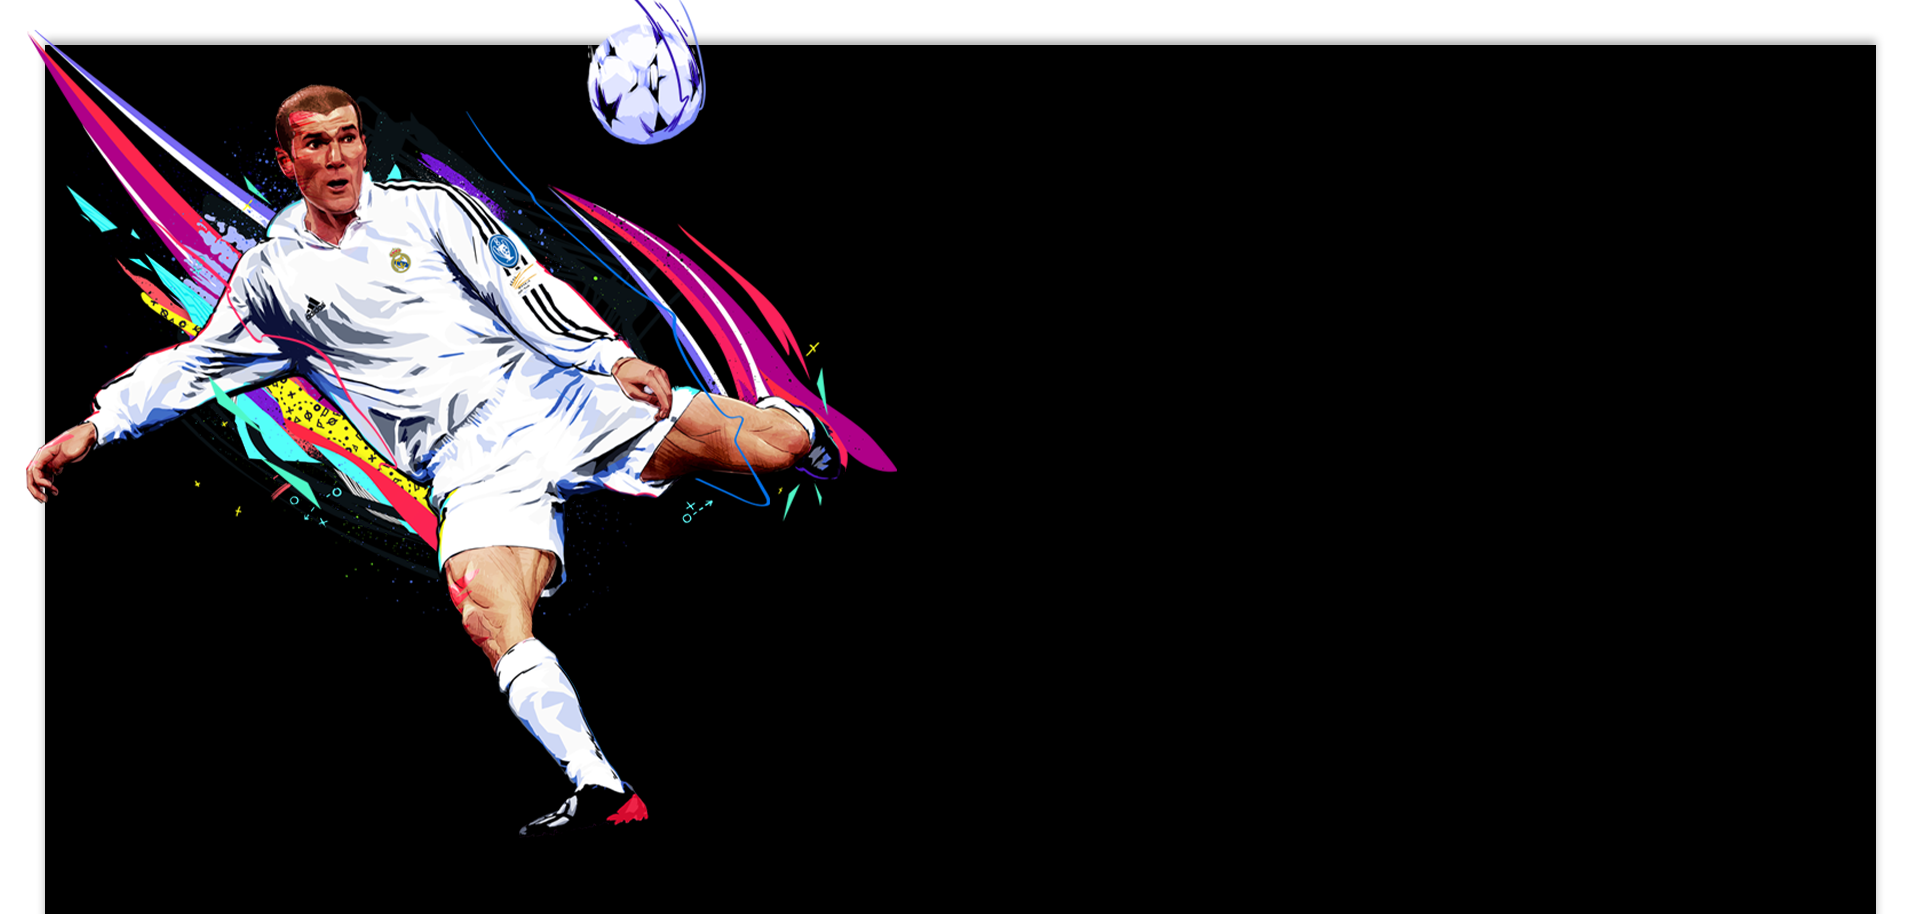 fut20-section-icons-zidane-xl.png.adapt.1920w.png